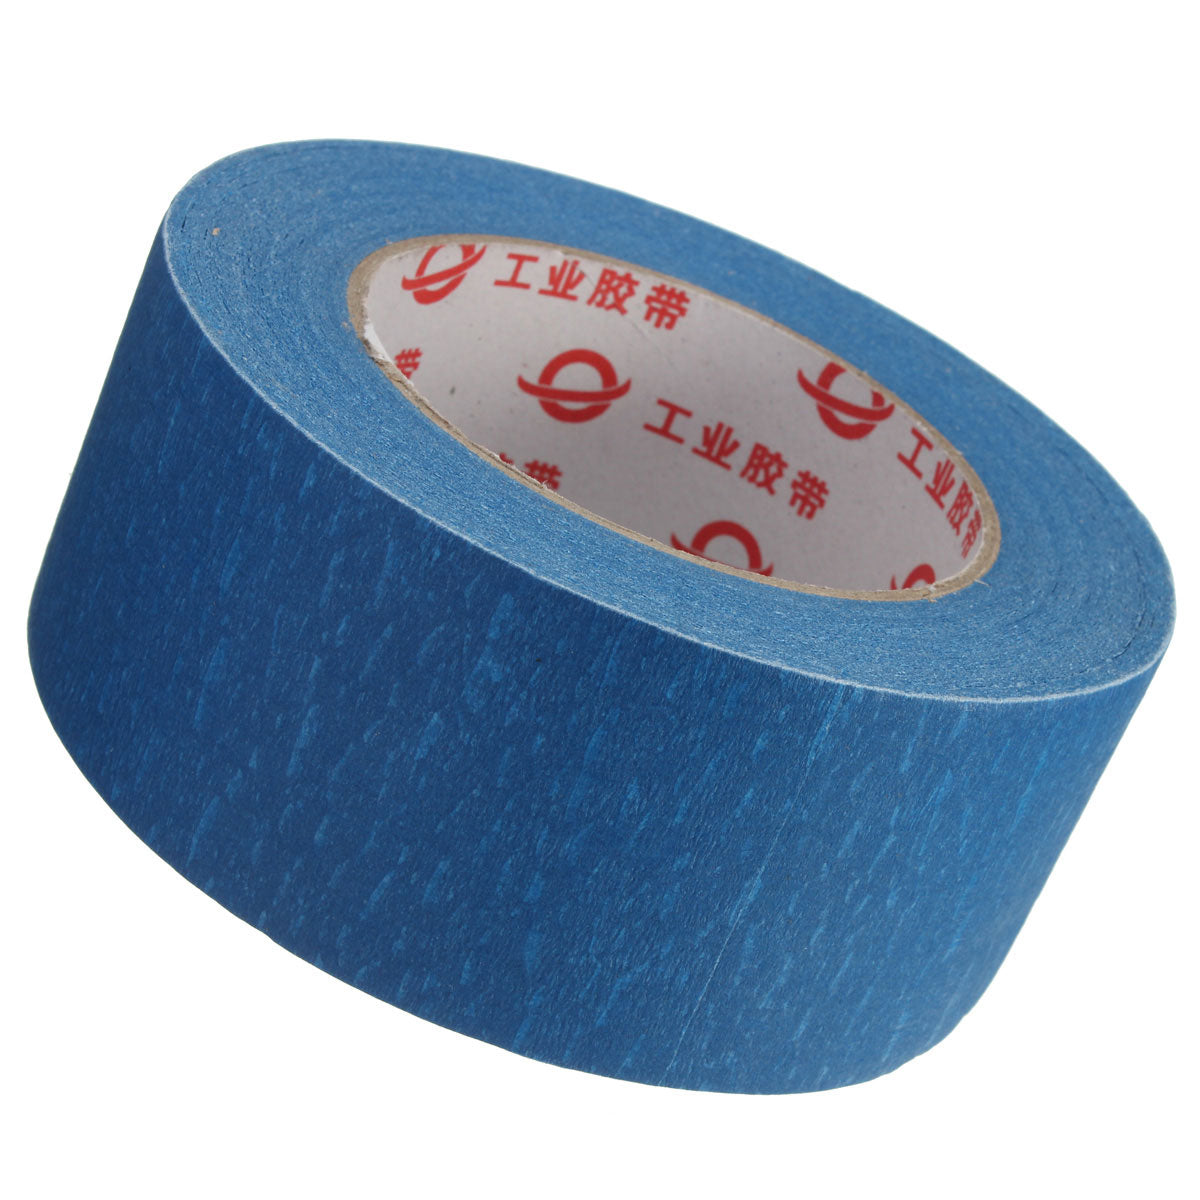 50mmx50m 50mm Wide 3D Printer Blue Tape Reprap Bed Tape Masking Tape For 3D Printer Parts